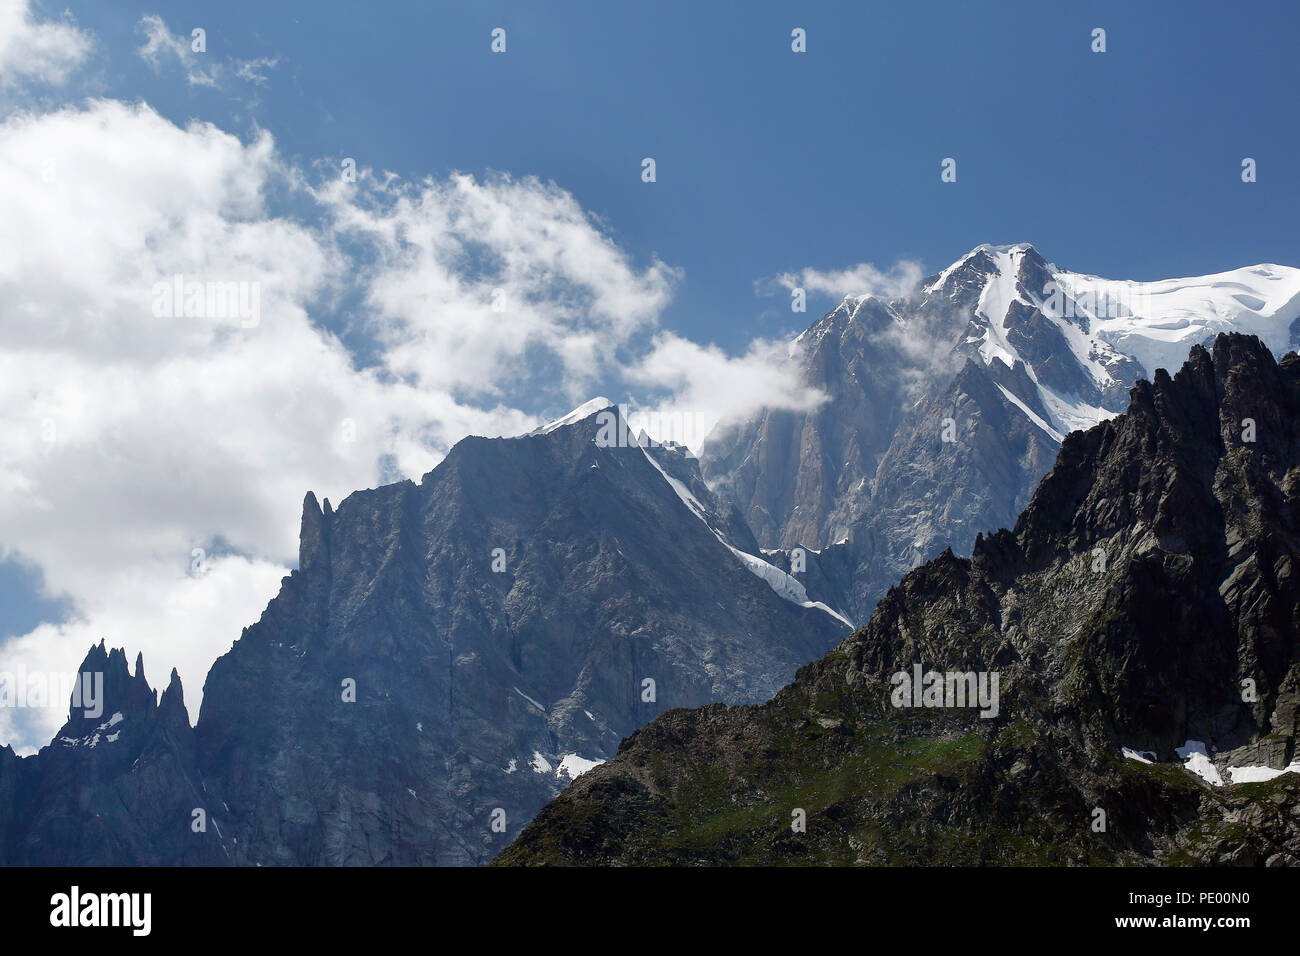 Mont Blanc (Monte Bianco) and the Aiguille blanche de Peuterey in Aosta Valley, Alpes of Italy, in a summer morning. Stock Photo